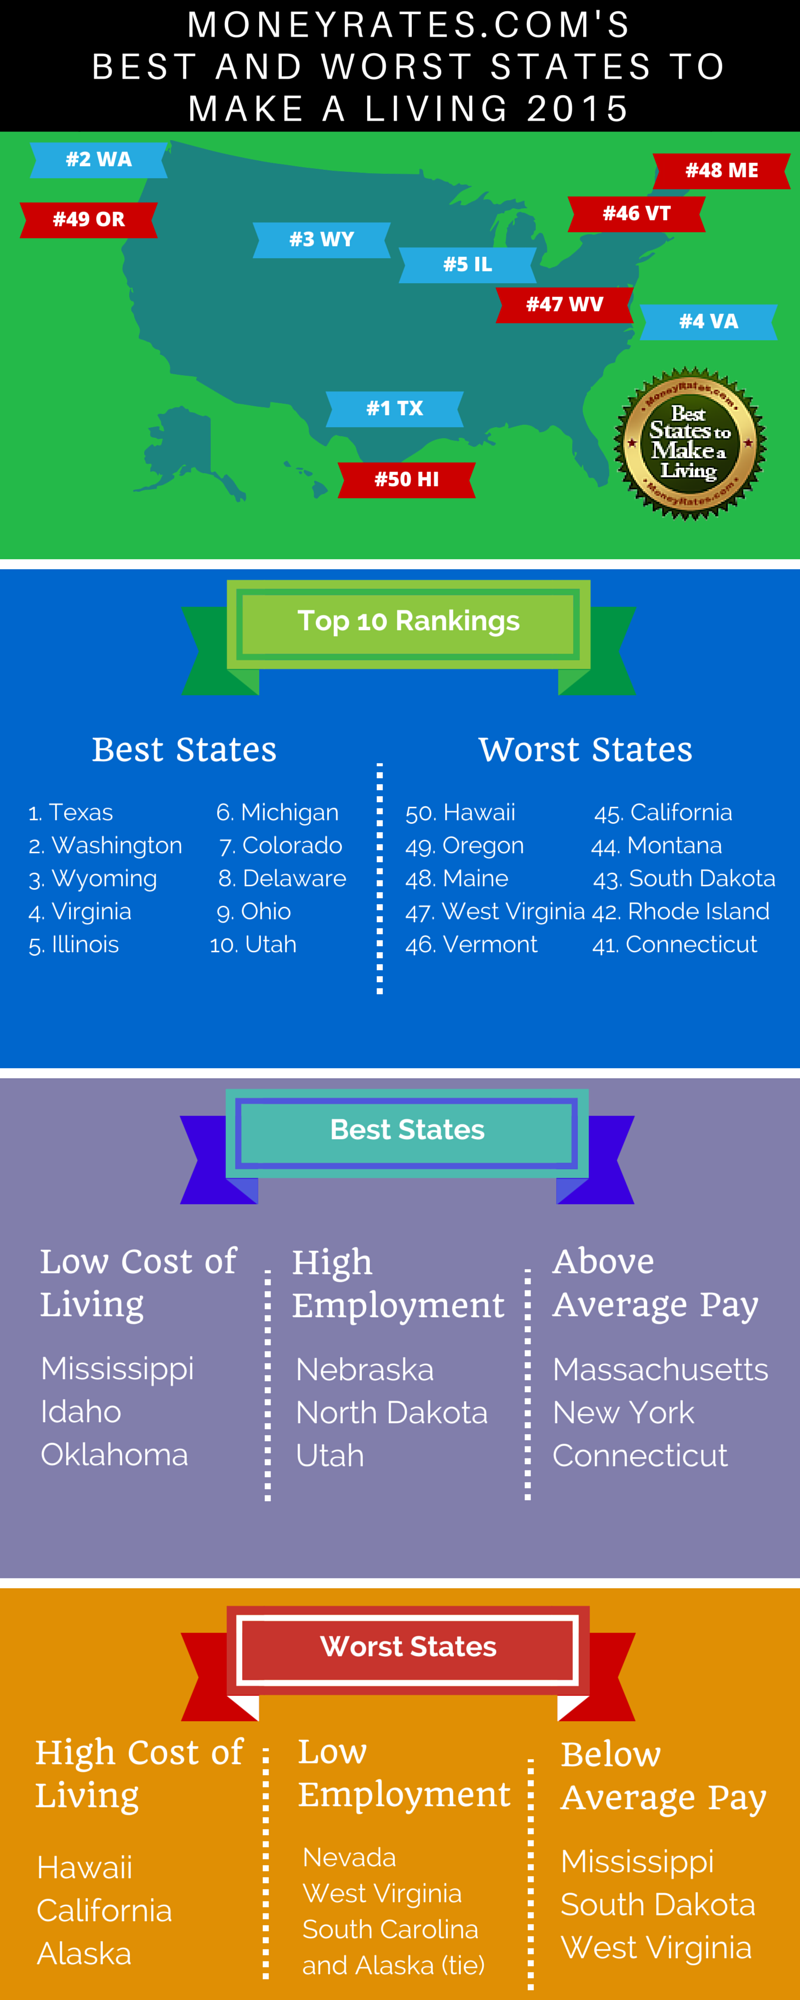 The Best and Worst States to Make a Living 2015 Places